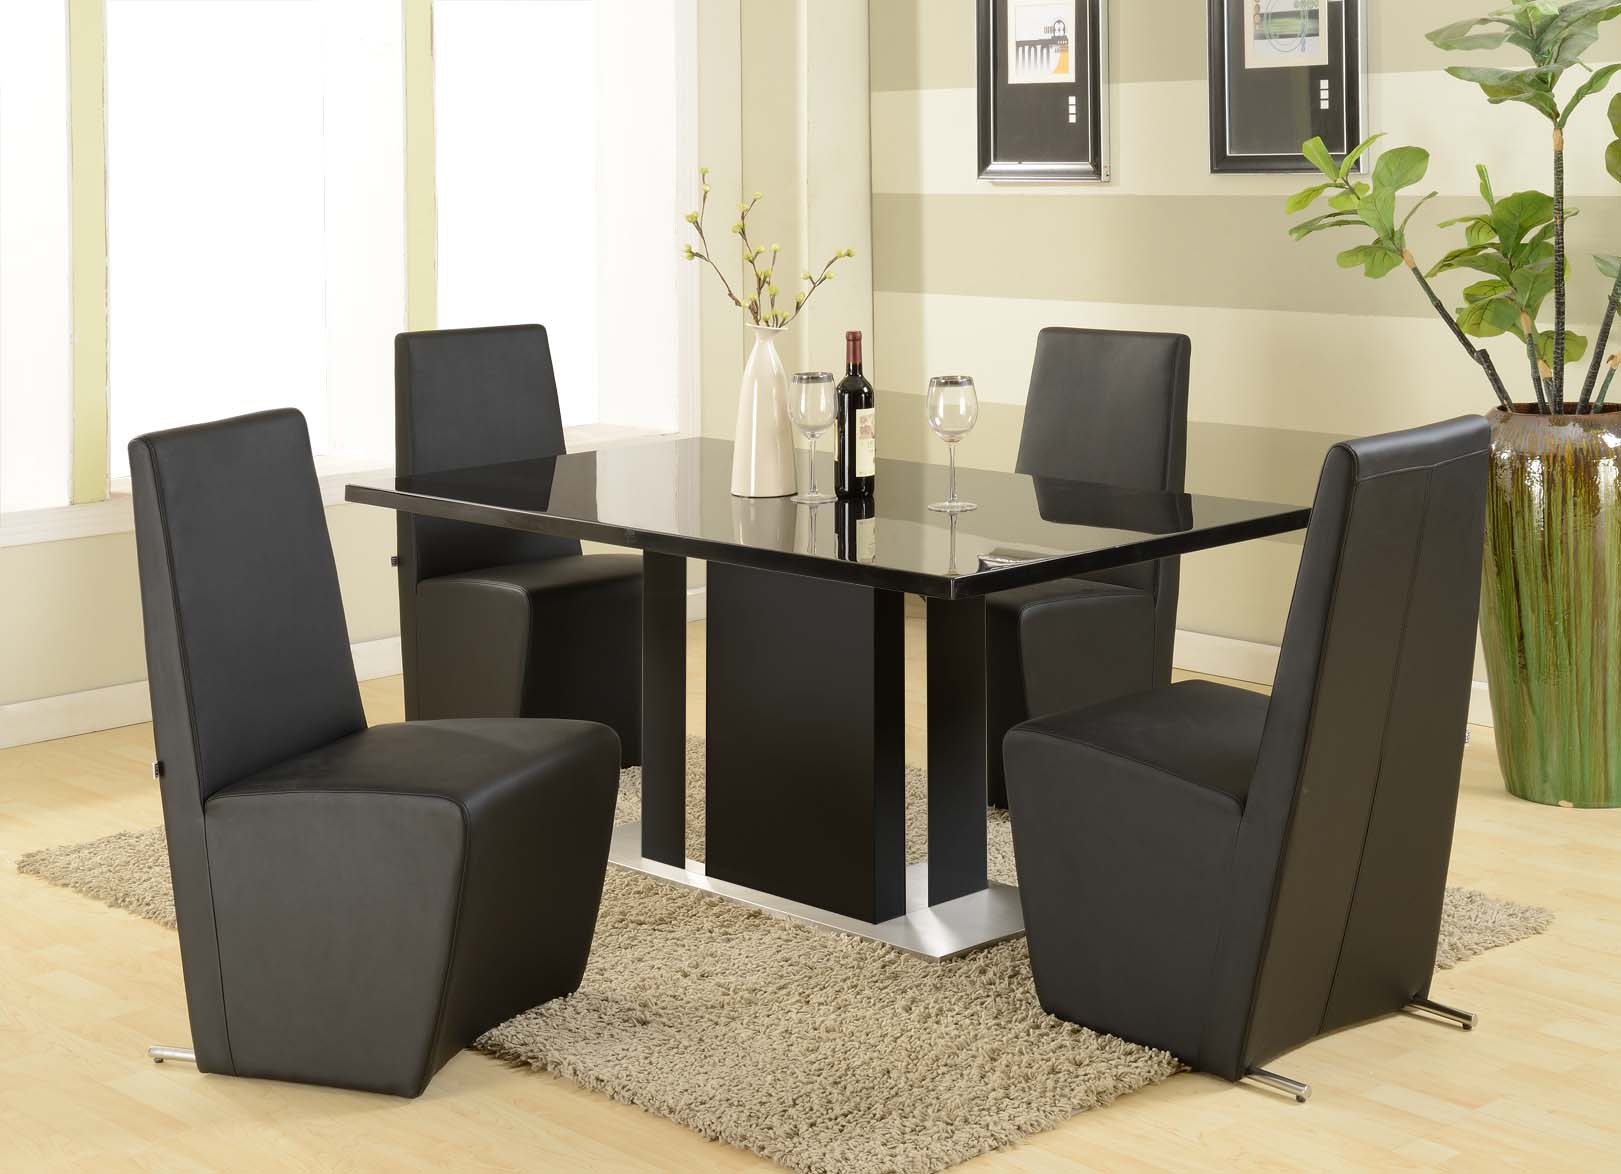 Modern furniture table home design roosa for Black dining room table set